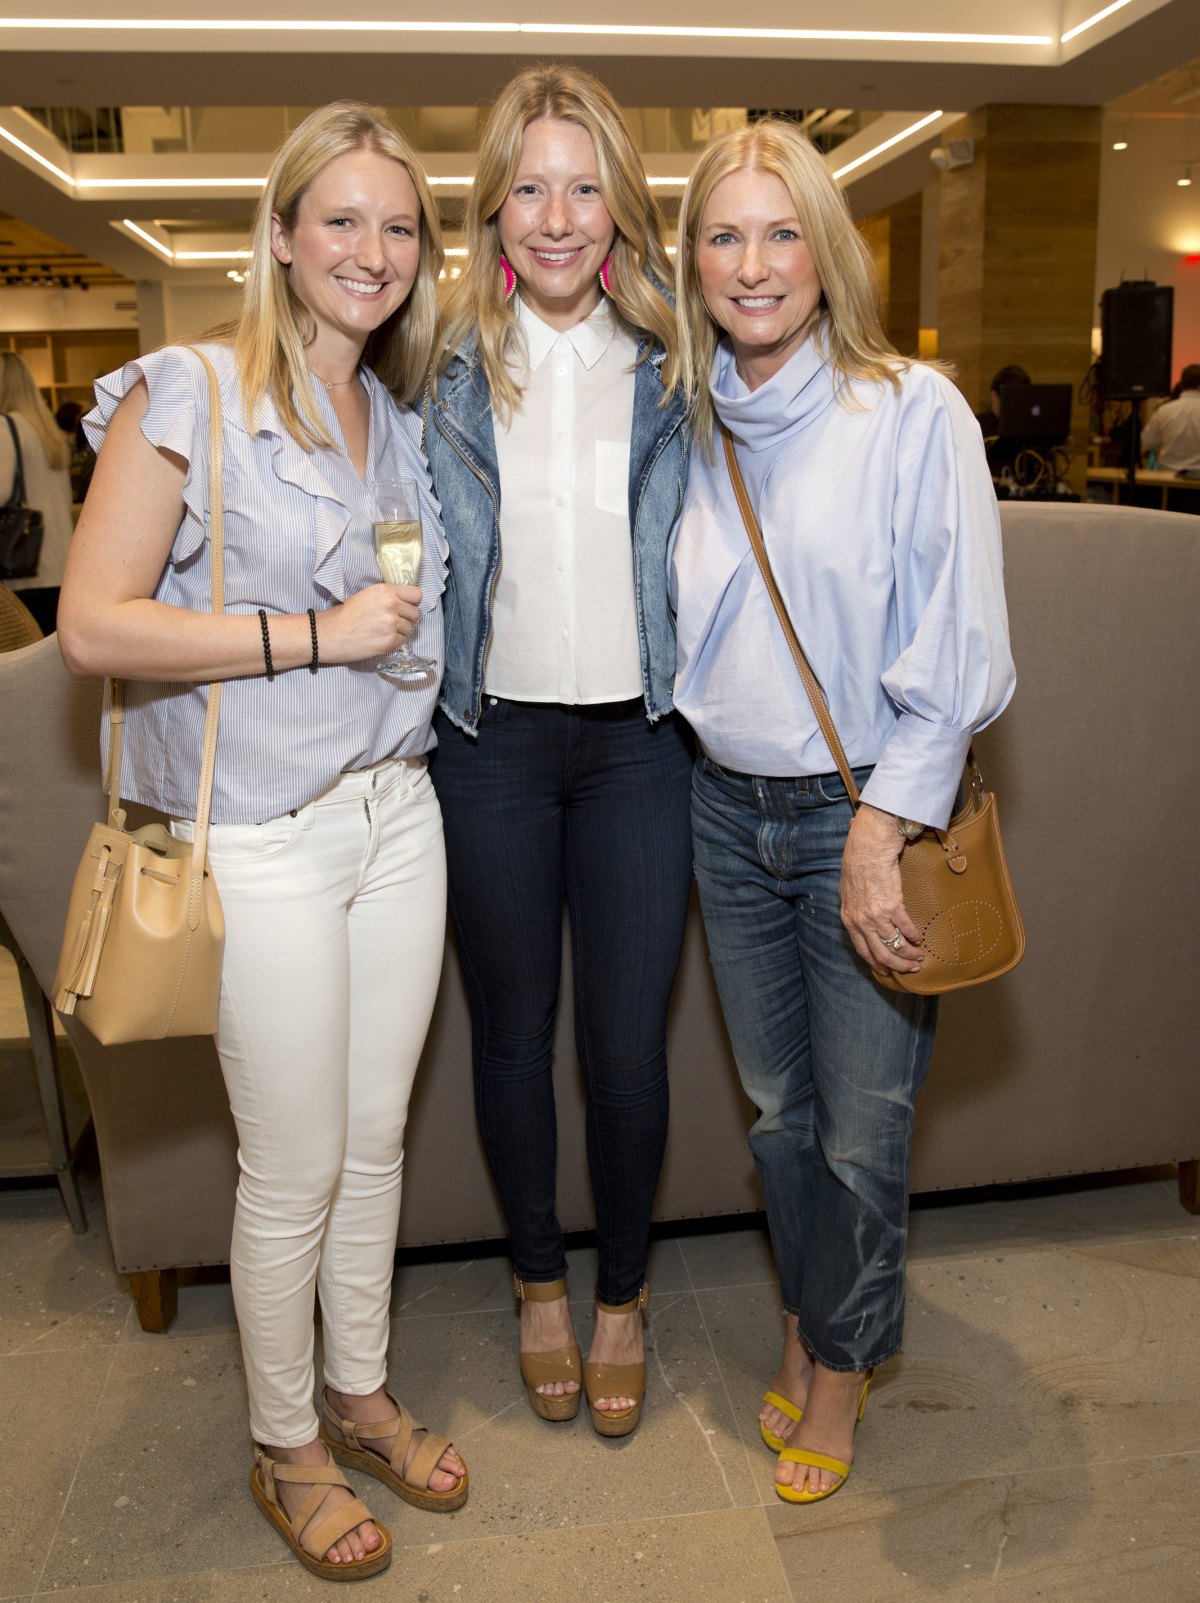 Houston, Saint Bernard opening party, April 2016, Chandler West, Courtney Ross, Tammy West